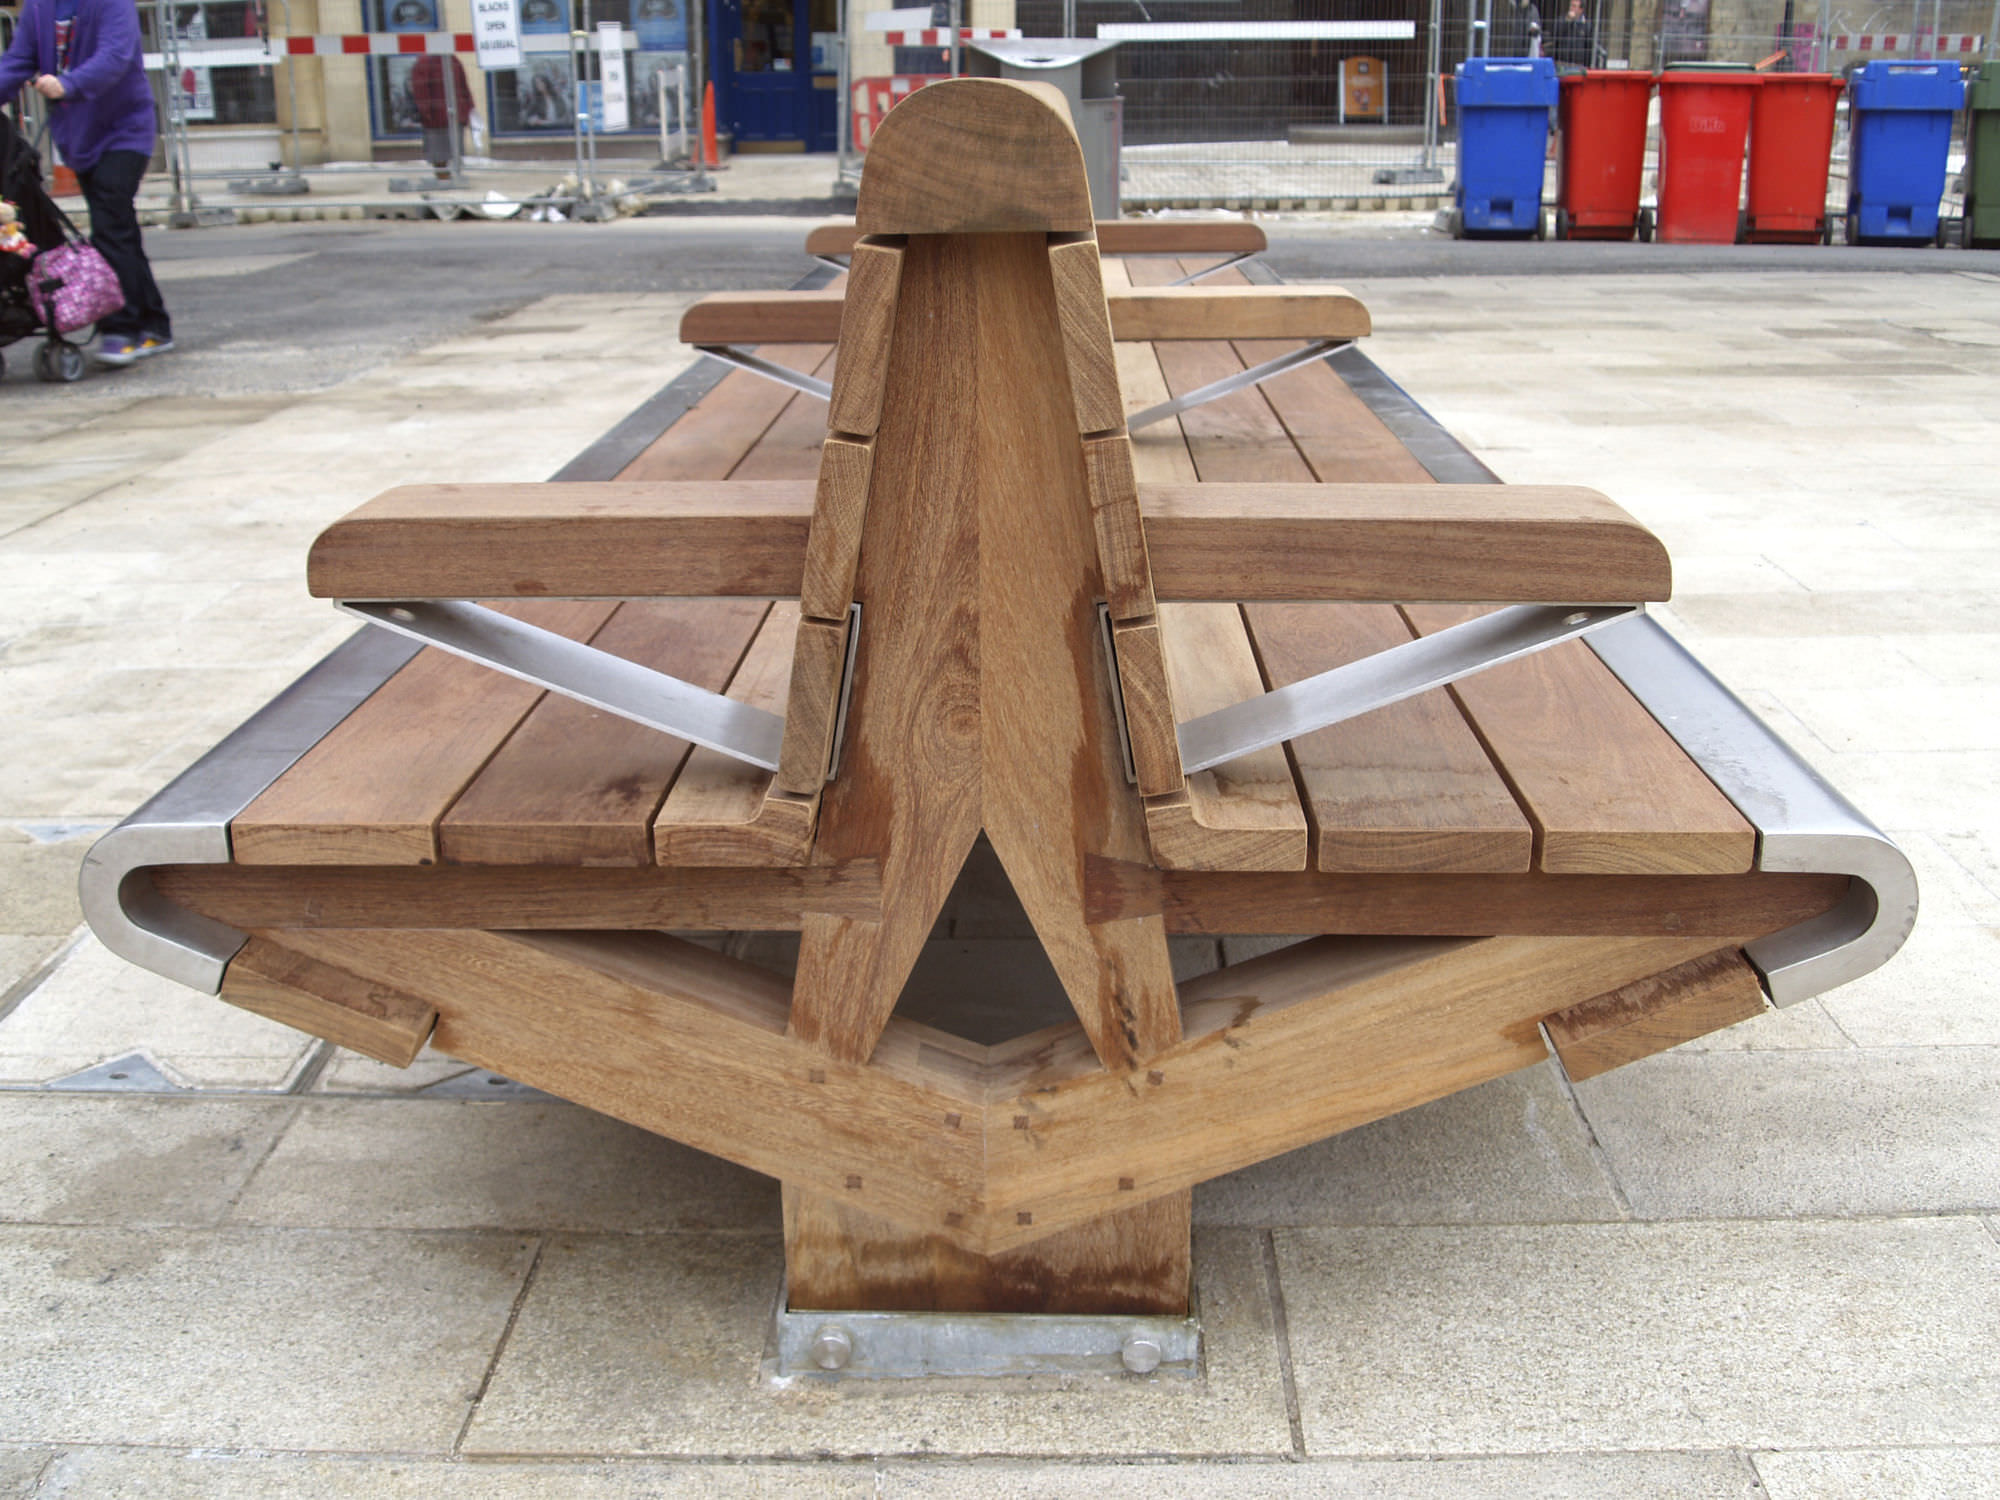 Public Bench Contemporary Wooden Stainless Steel Cathedral Square Peterborough